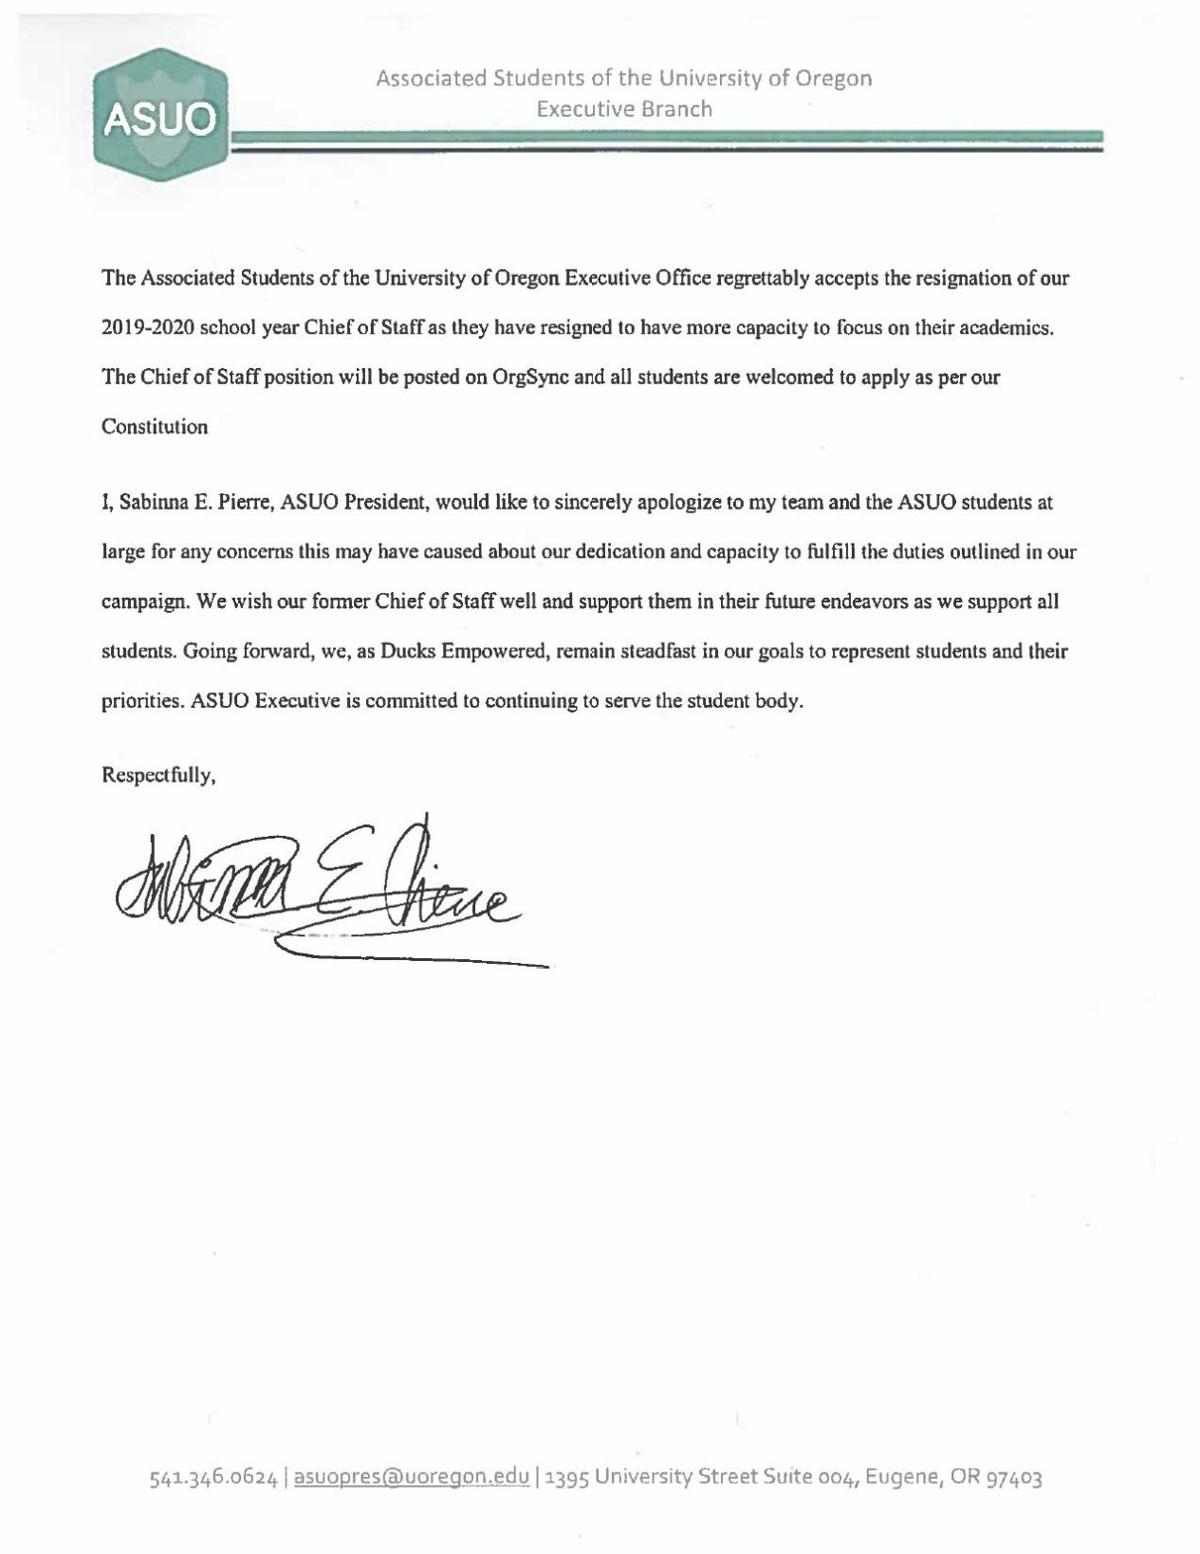 Pierre Accepts Chief of Staff Resignation